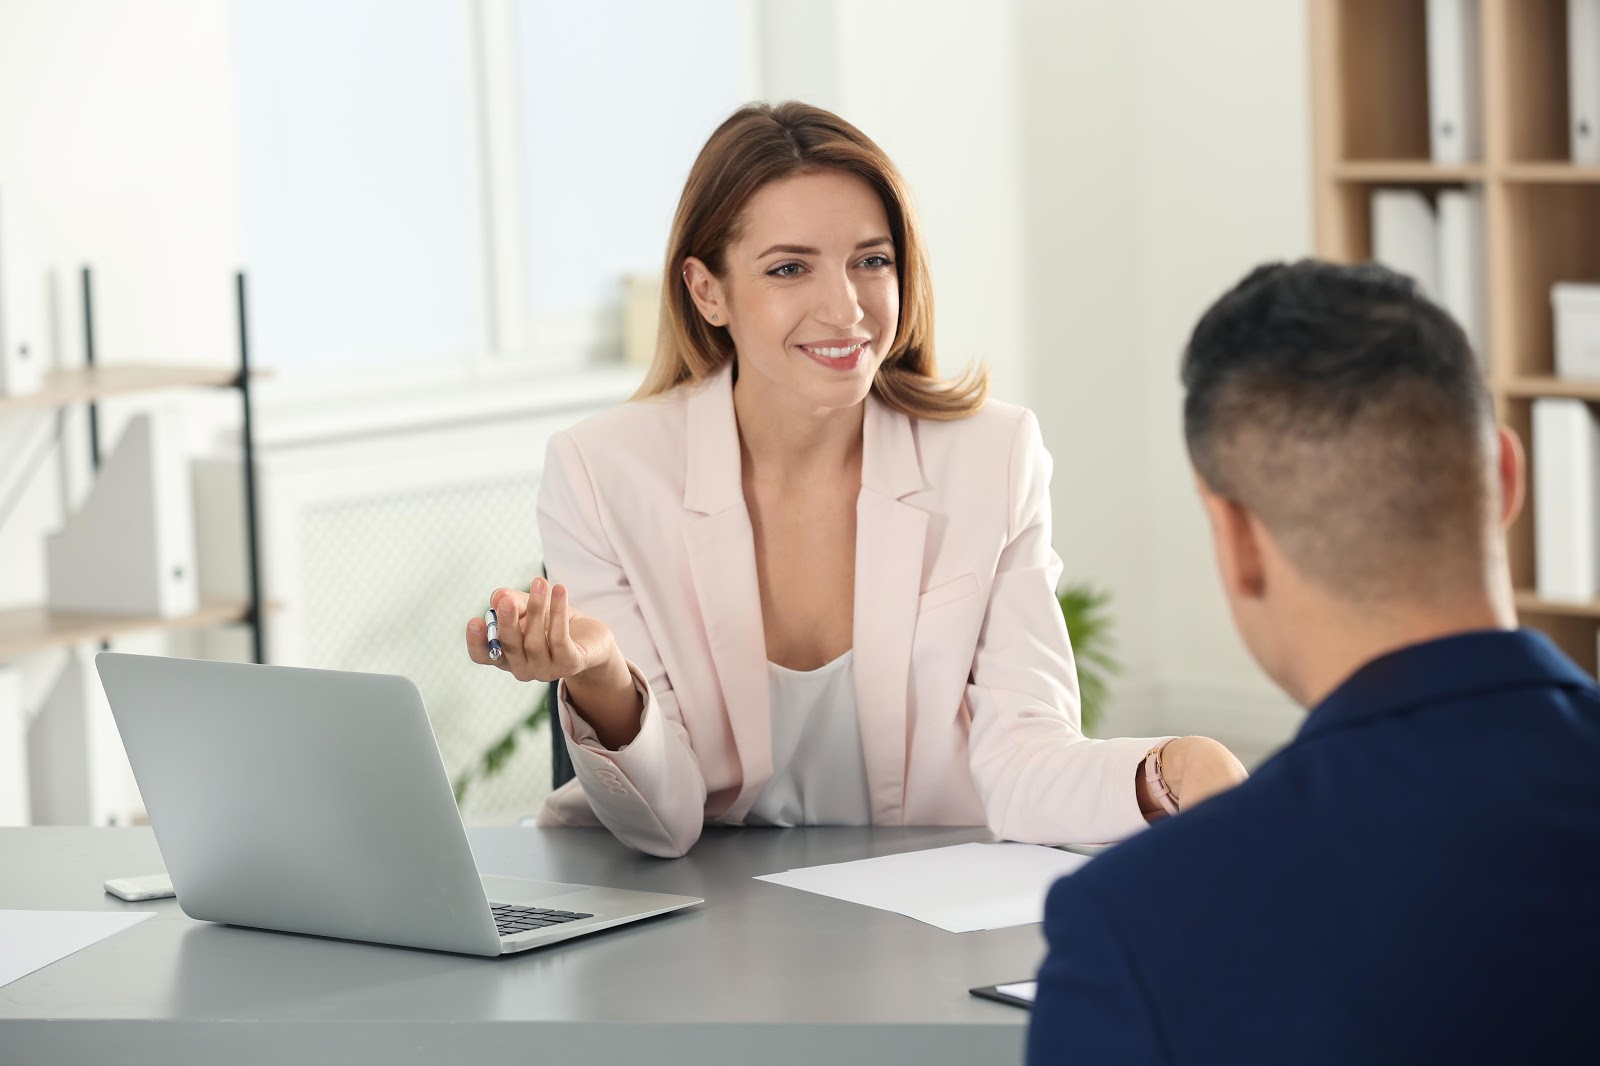 How to Cold Email for an Internship: Woman smiling during an intern interview